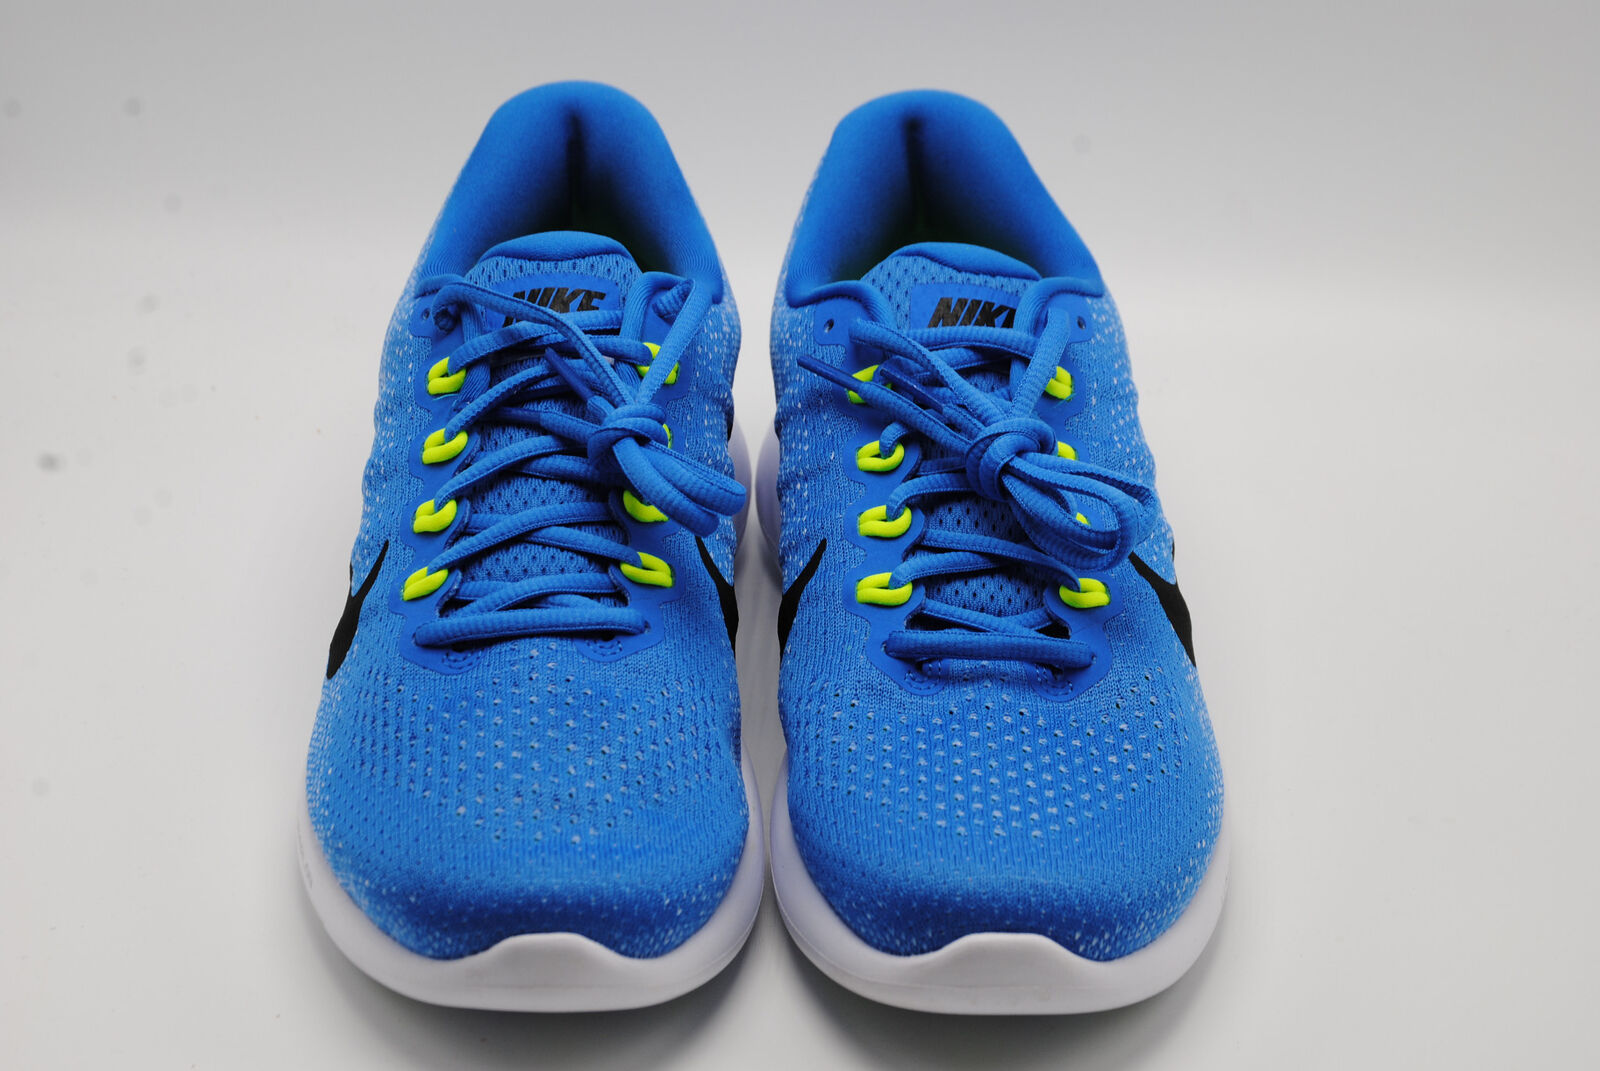 pretty nice 9ca1f 7ceb2 ... Nike Lunarglide 9 Men s running running running shoes 904715 401  Multiple sizes abf475 ...